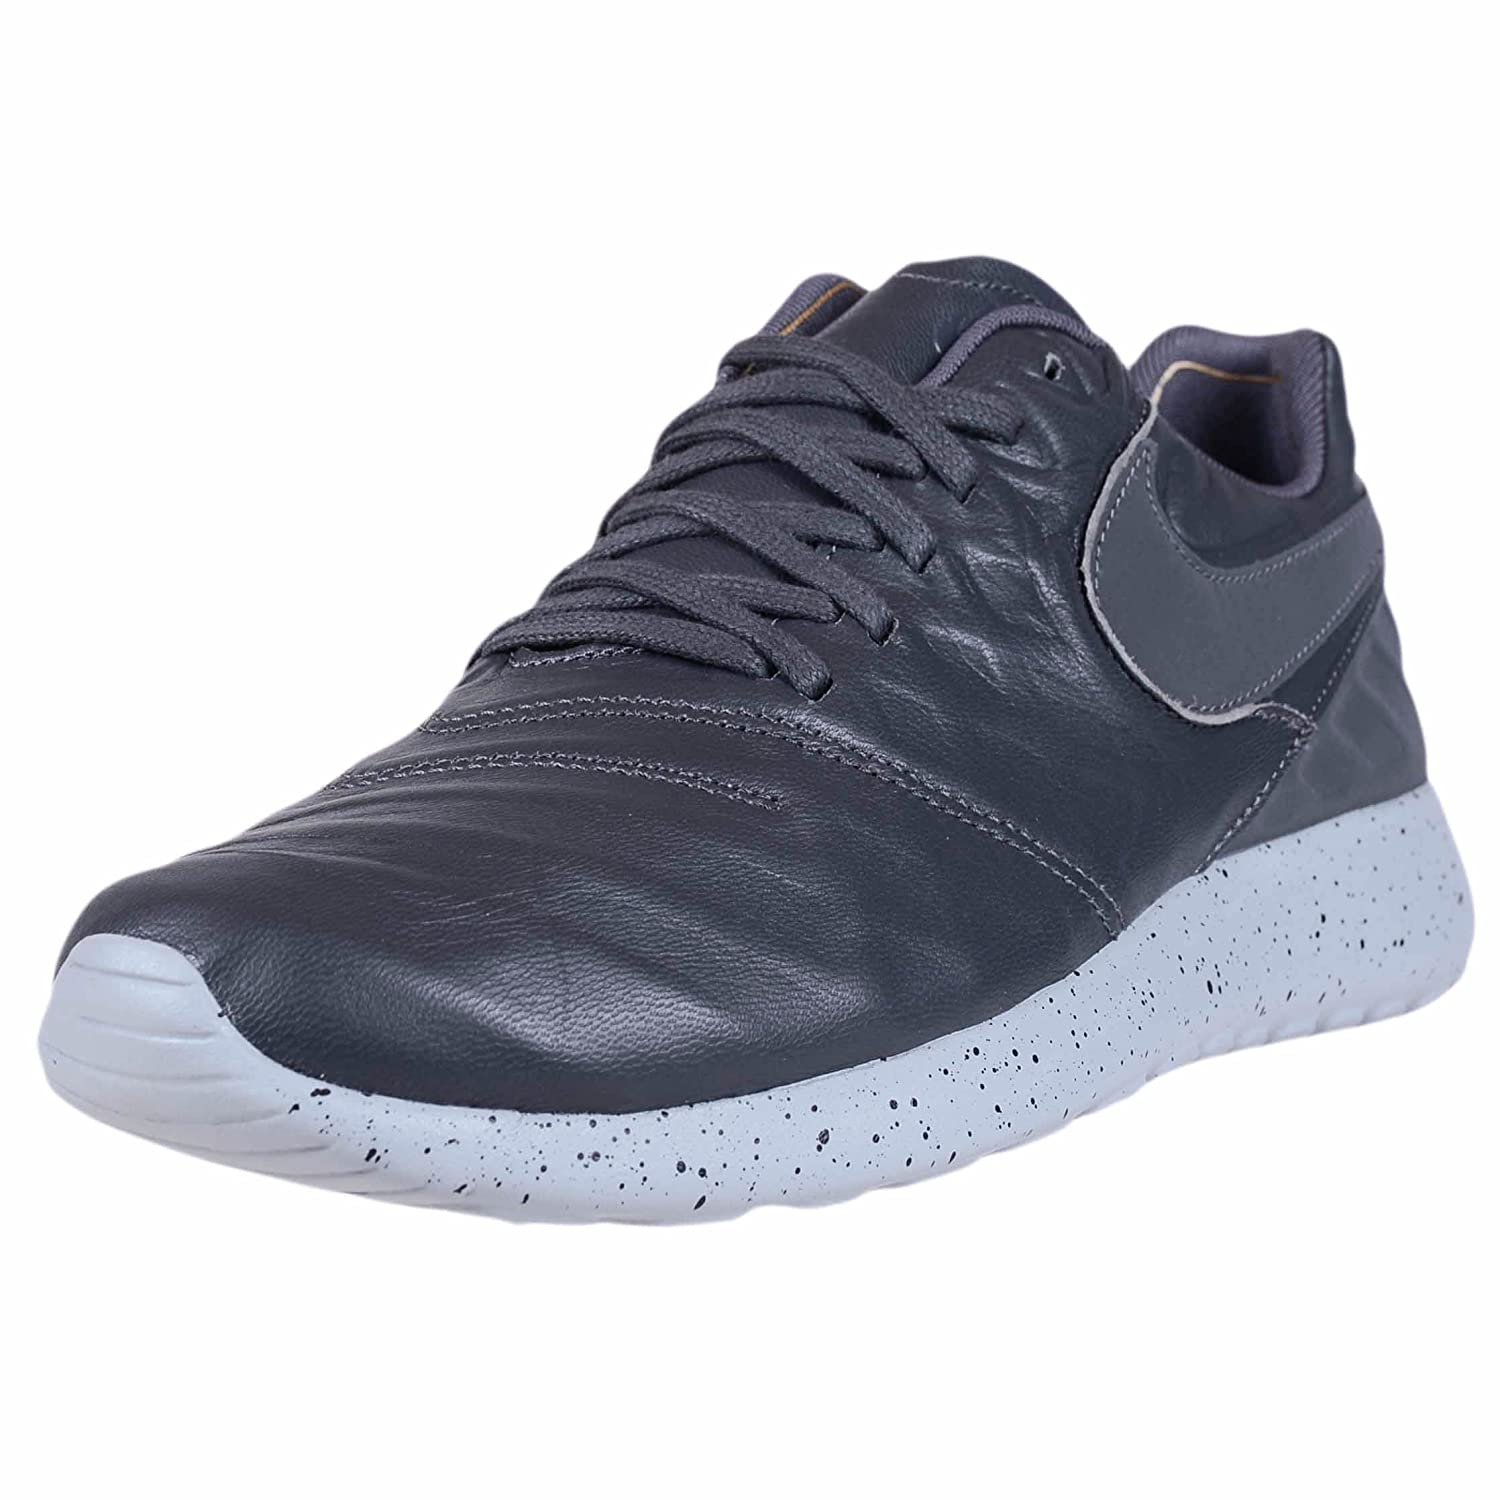 best website 7f70f ced63 Amazon.com  Nike Mens Roshe Tiempo VI Casual Shoe  Fashion S